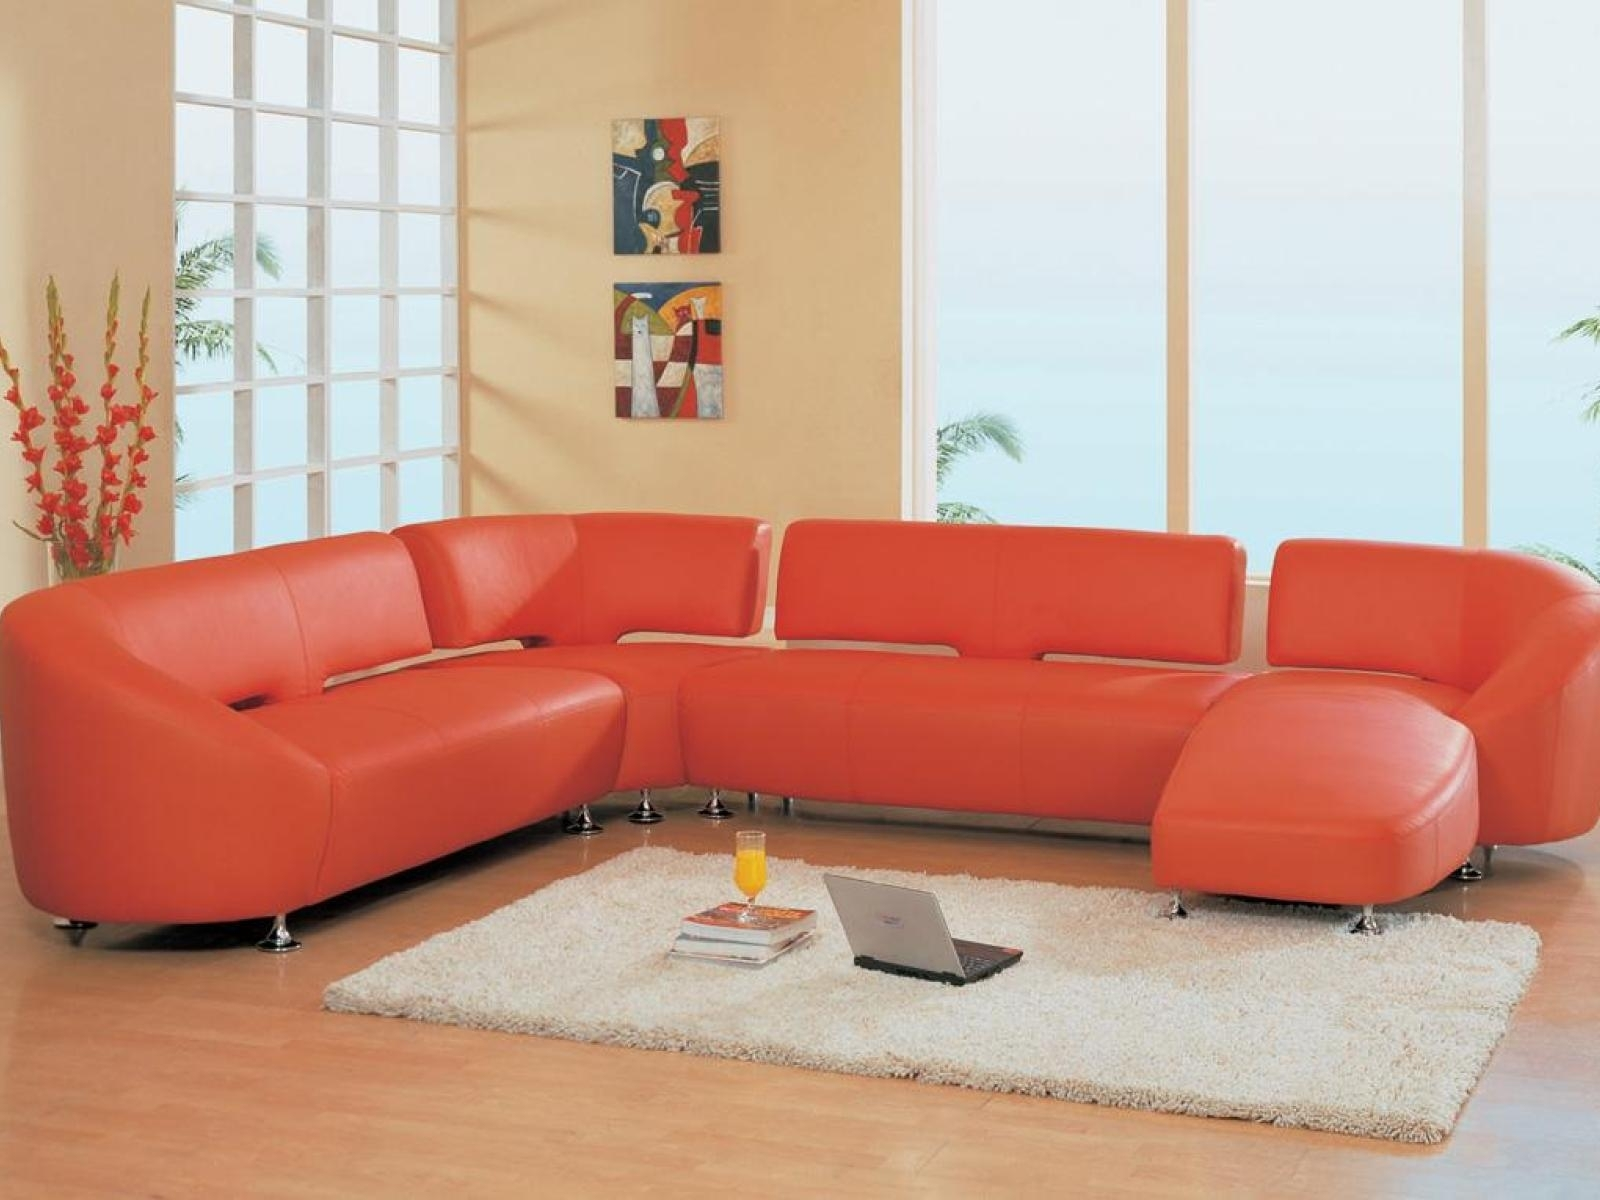 Sofa : 38 Orange Leather Sectional Sofa With Chaise Lounge Chrome for Small Red Leather Sectional Sofas (Image 7 of 15)